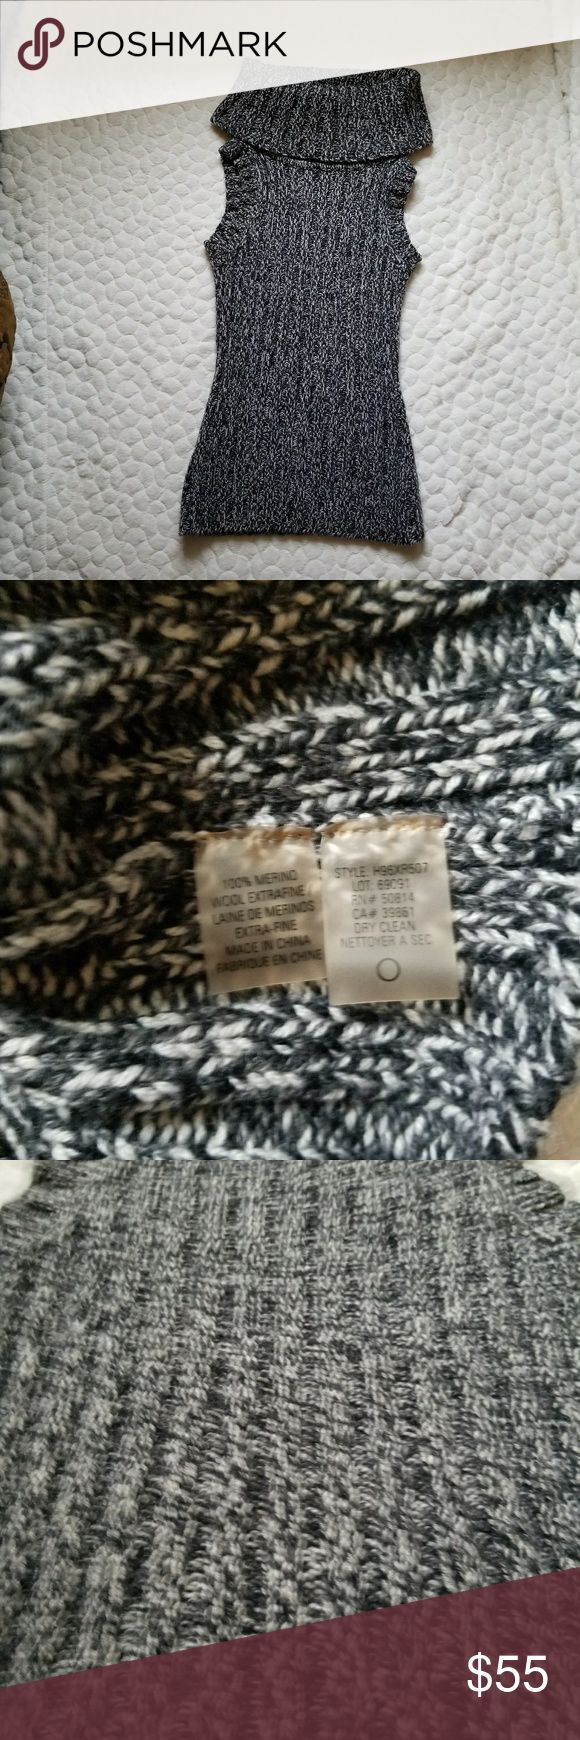 Signature Saks Fifth Avenue Merino Wool turtleneck ******Saks 5th Ave Merino wool sleeveless turtleneck. Size is small. Really thick and warm. Cure and classy fit. Black and white to create a grey look from a distance.****** Saks Fifth Avenue Sweaters Cowl & Turtlenecks